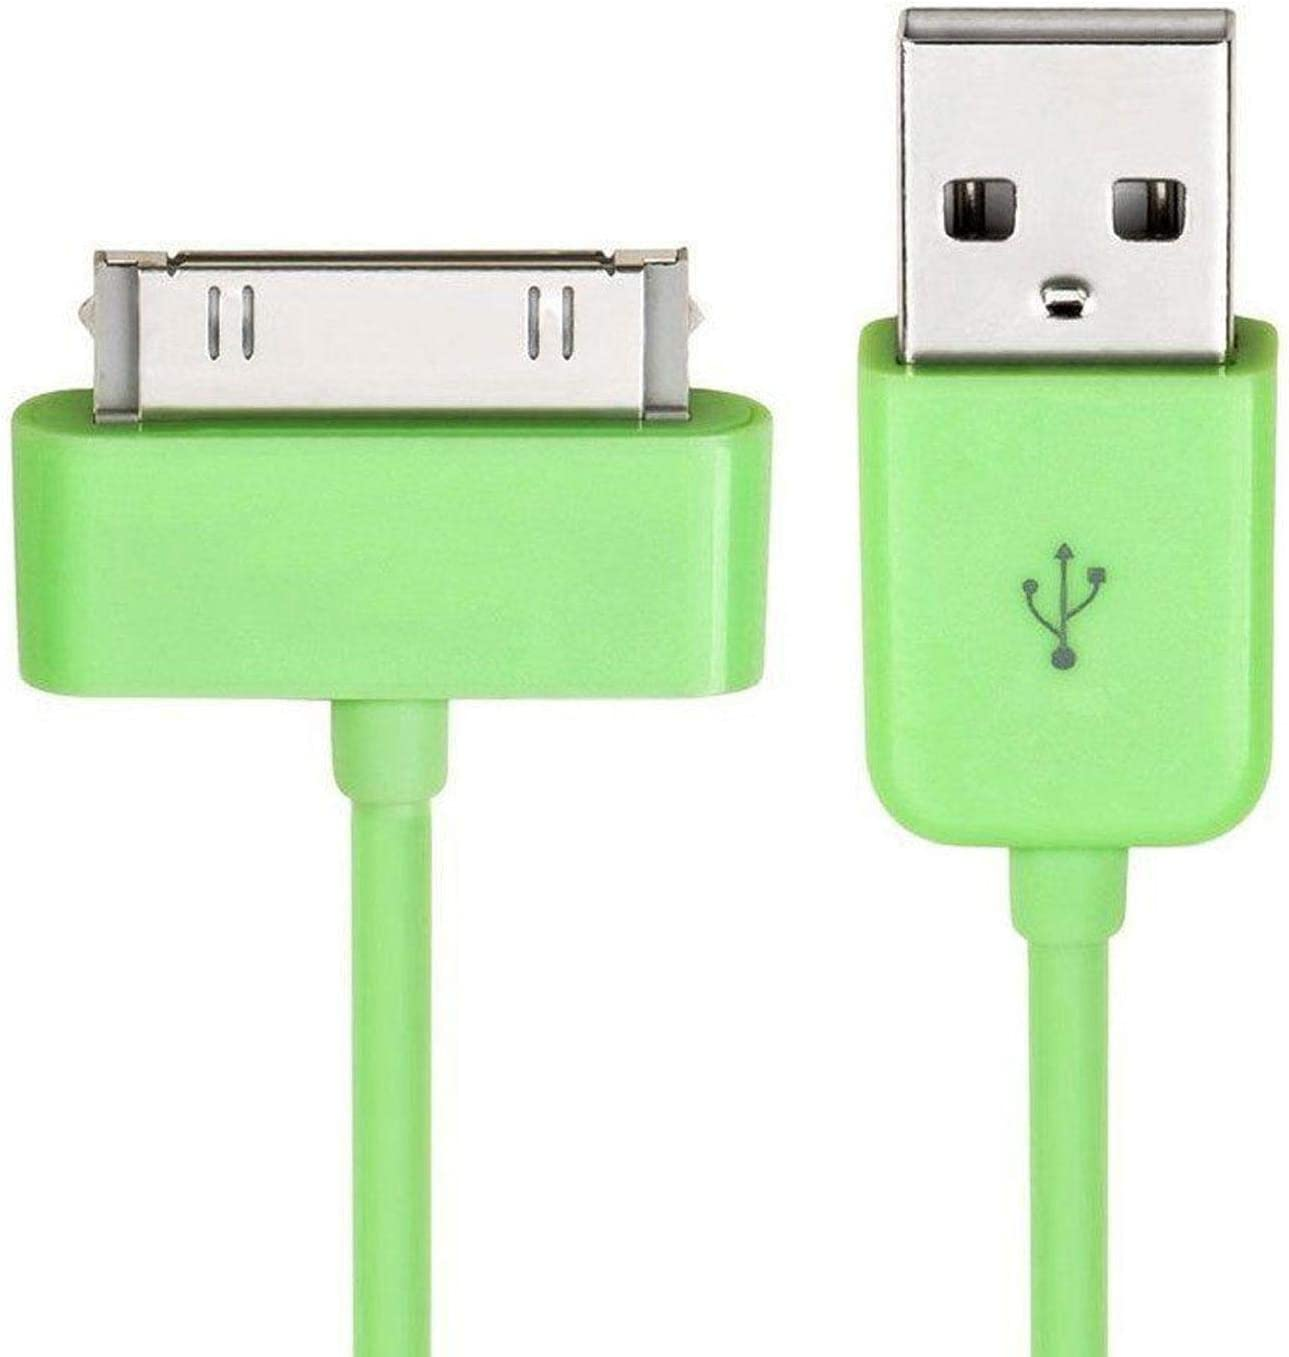 ipad 3rd generation charger amazon